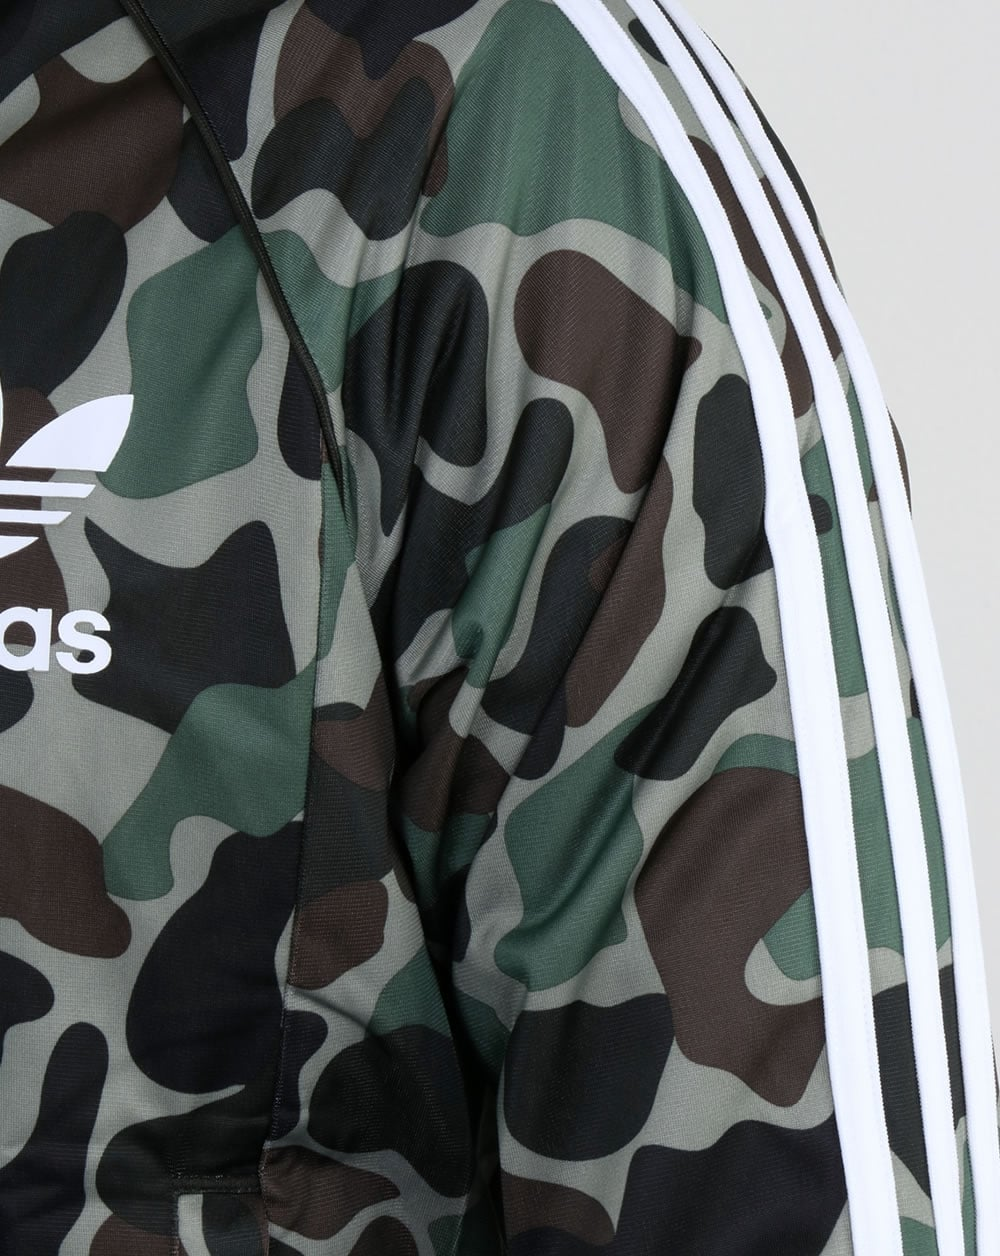 Adidas Originals Camo Superstar Track Top,tracksuit,jacket